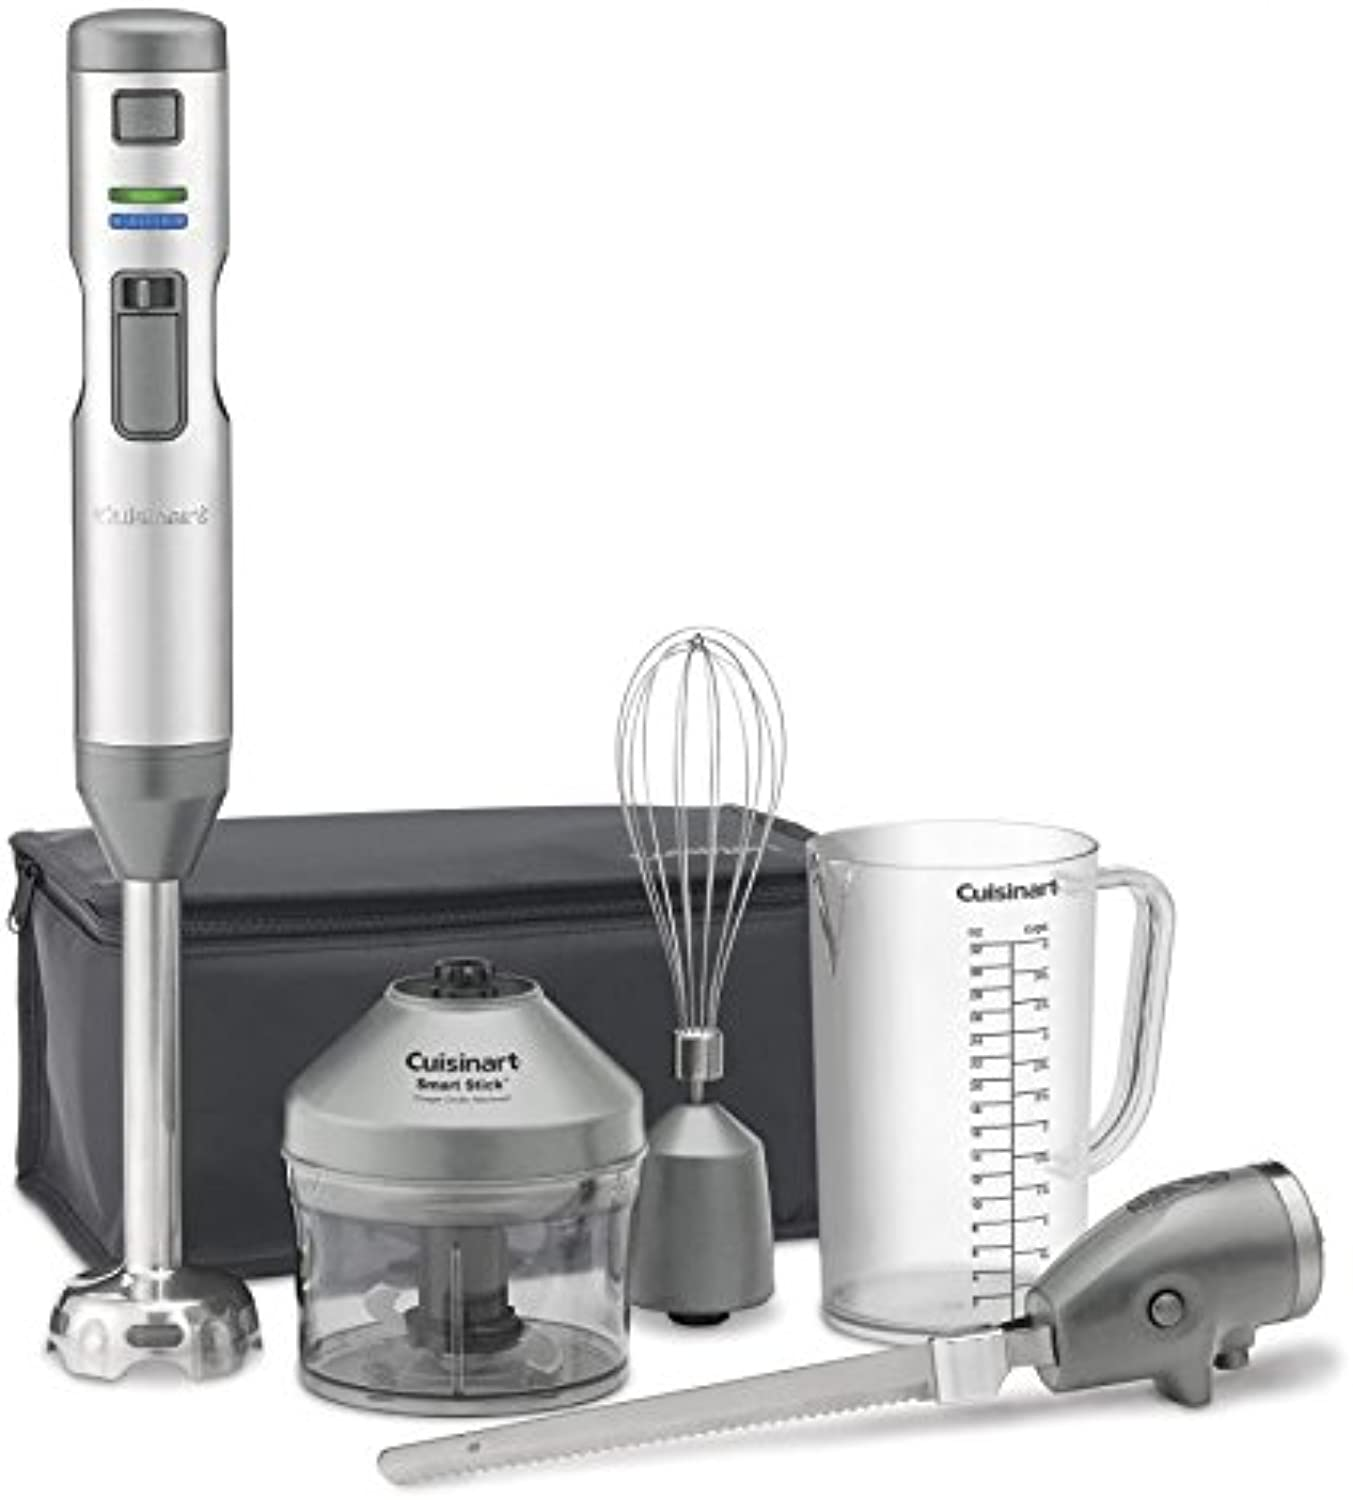 Cuisinart CSB-300 Rechargeable Hand Blender with Electric Knife, One Size, Stainless Steel